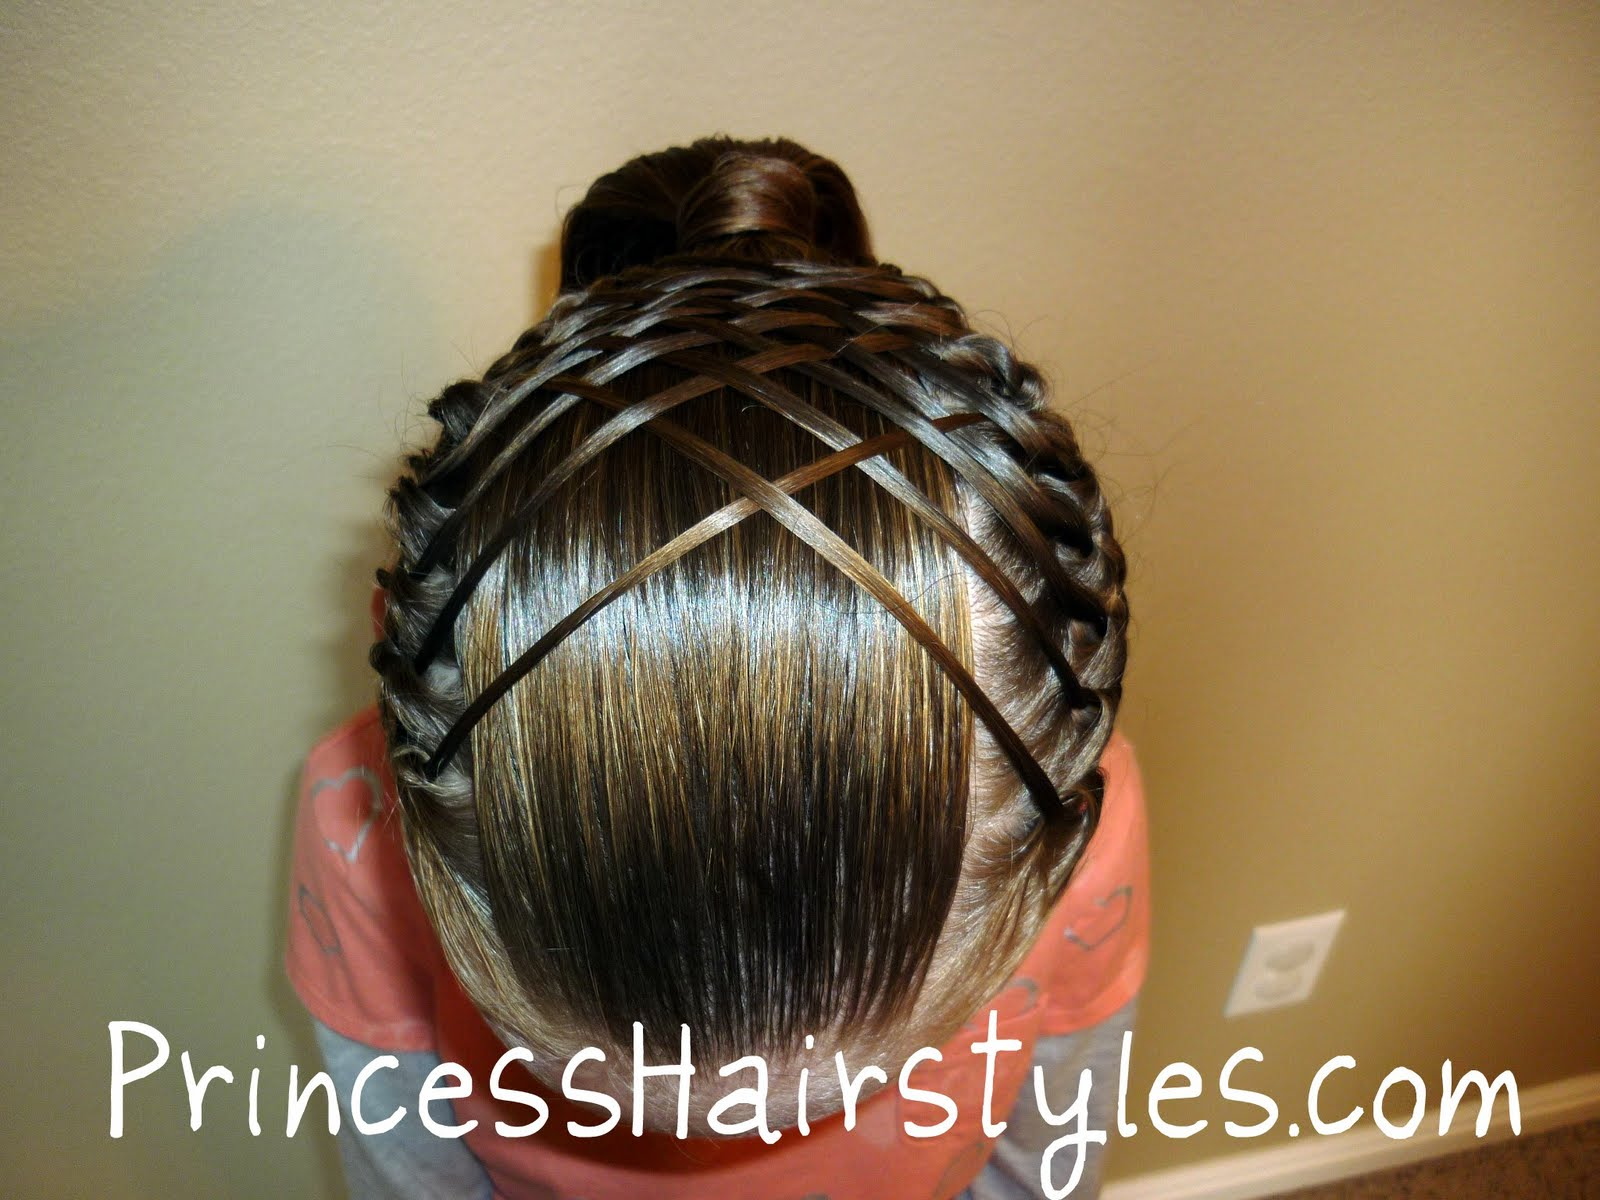 Tremendous Hair Styles Hair Style Ideas For Dancing Competitions Short Hairstyles Gunalazisus